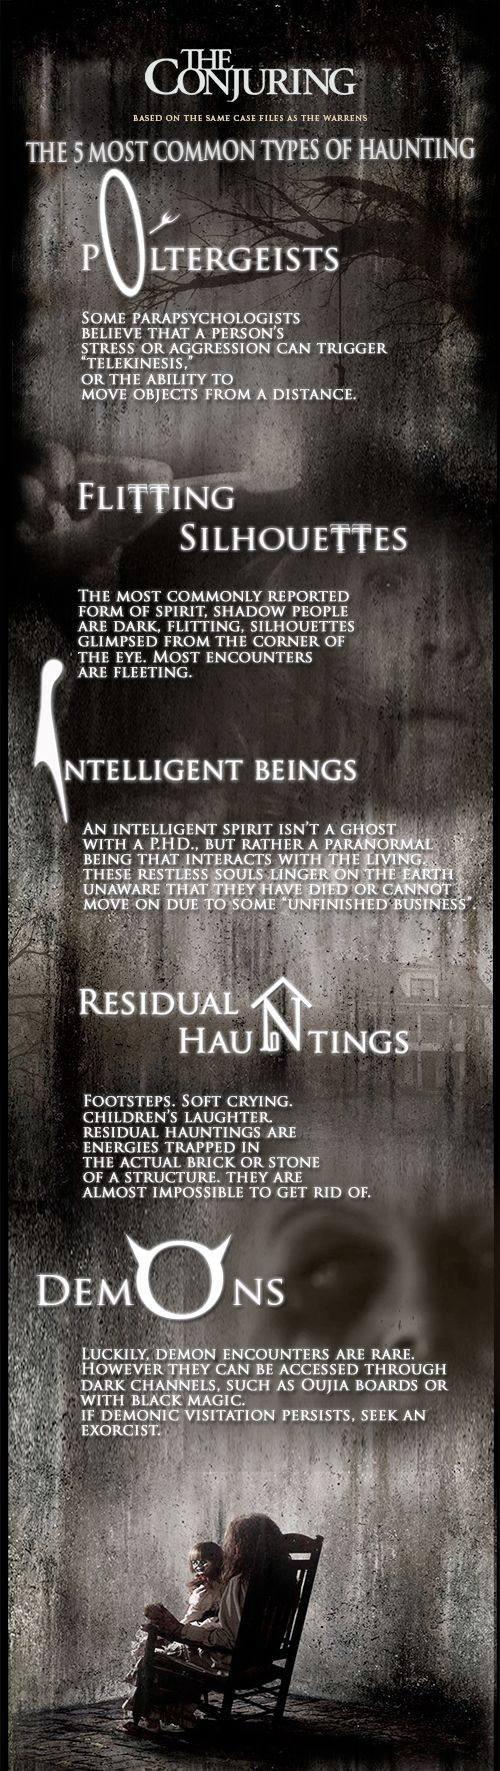 The Conjuring (2013) The 5 Most Common Types of Haunting problems with paranormal or demons?  Contact https://m.facebook.com/POmahaDemonologists